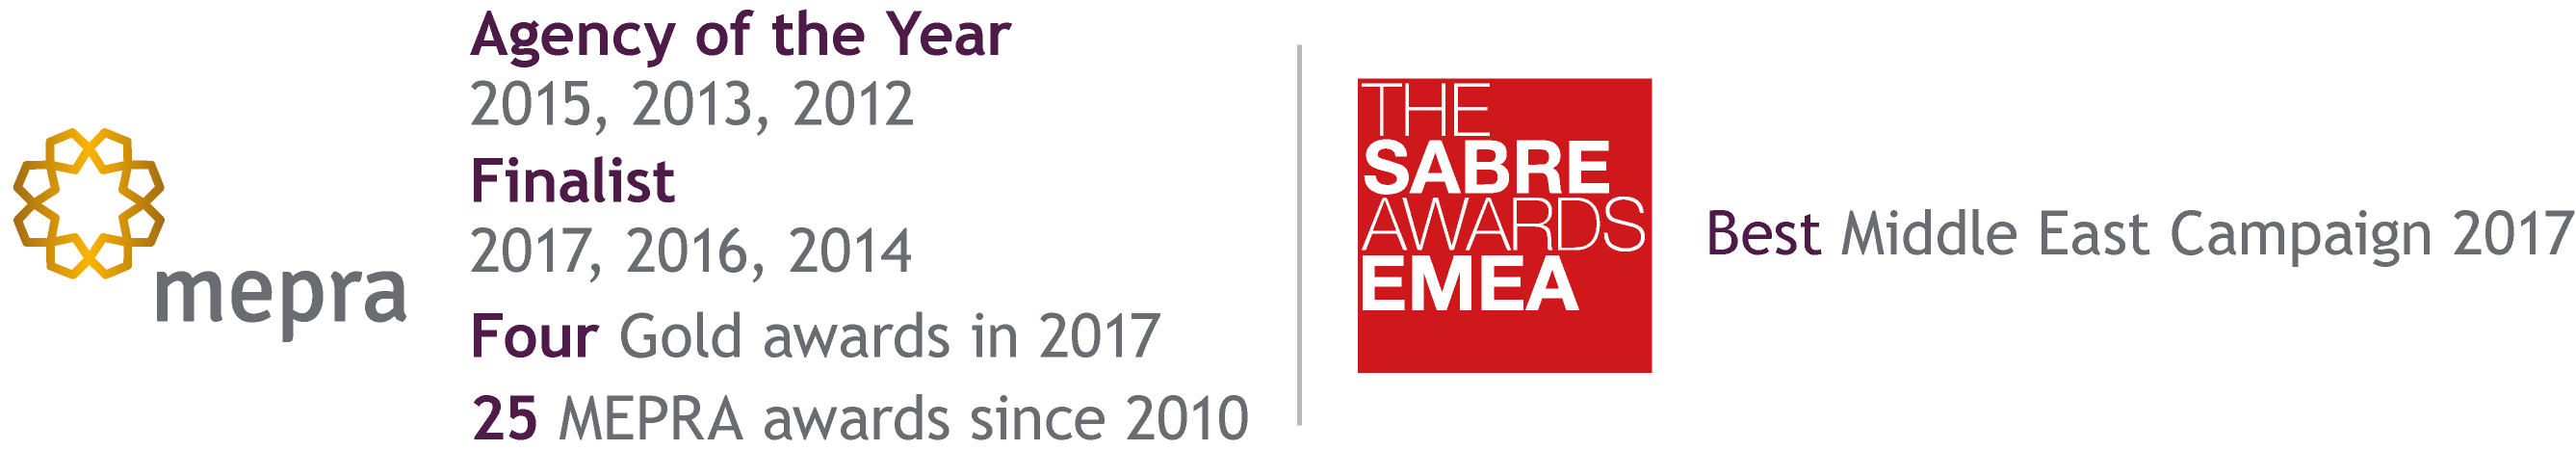 MEPRA Award winners - SABRE Awards EMEA winner